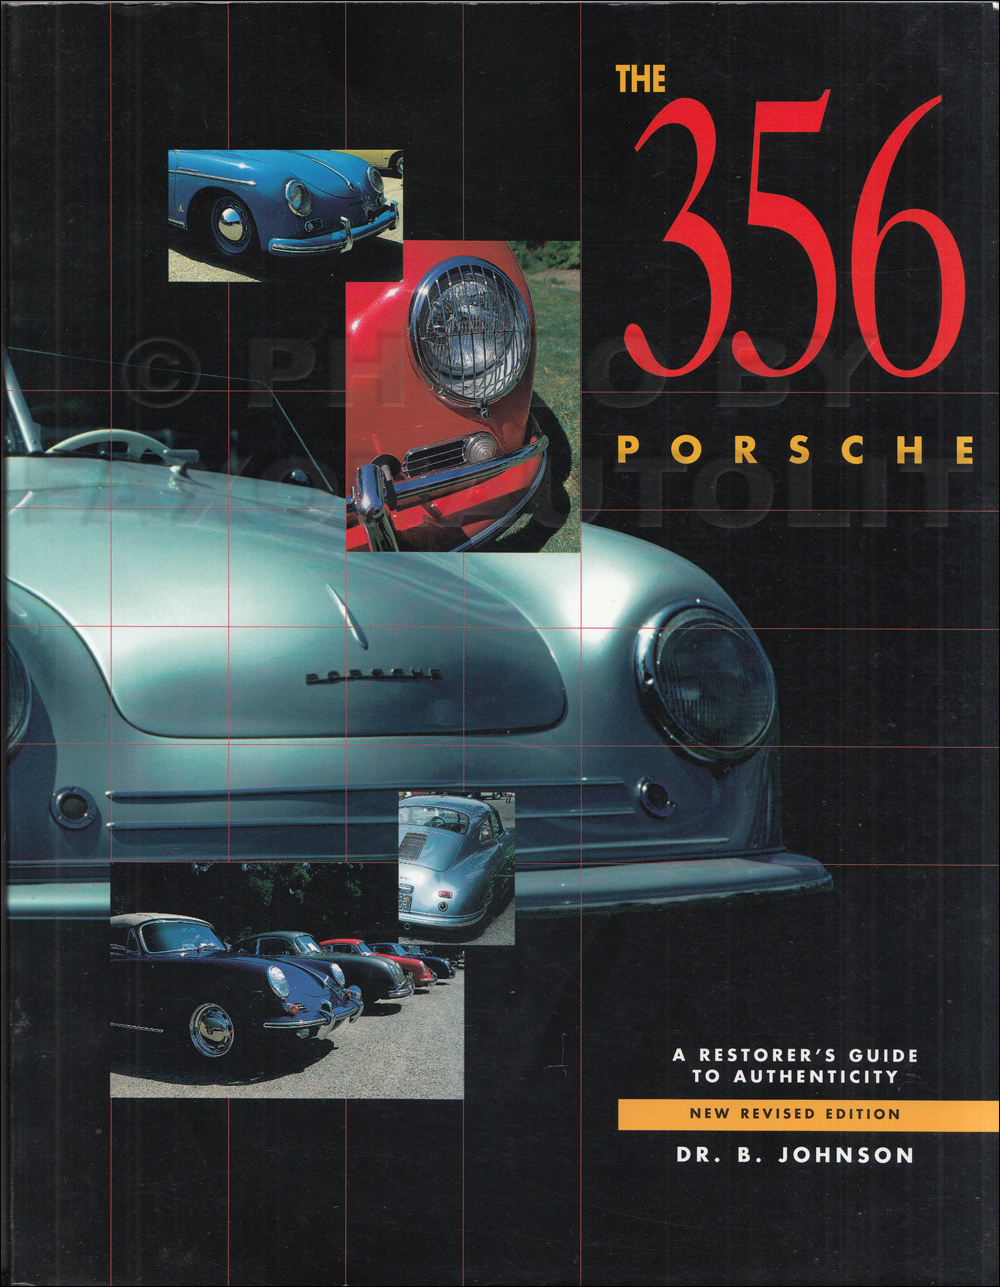 1950-1965 The 356 Porsche: A Restorer's Guide to Authenticity